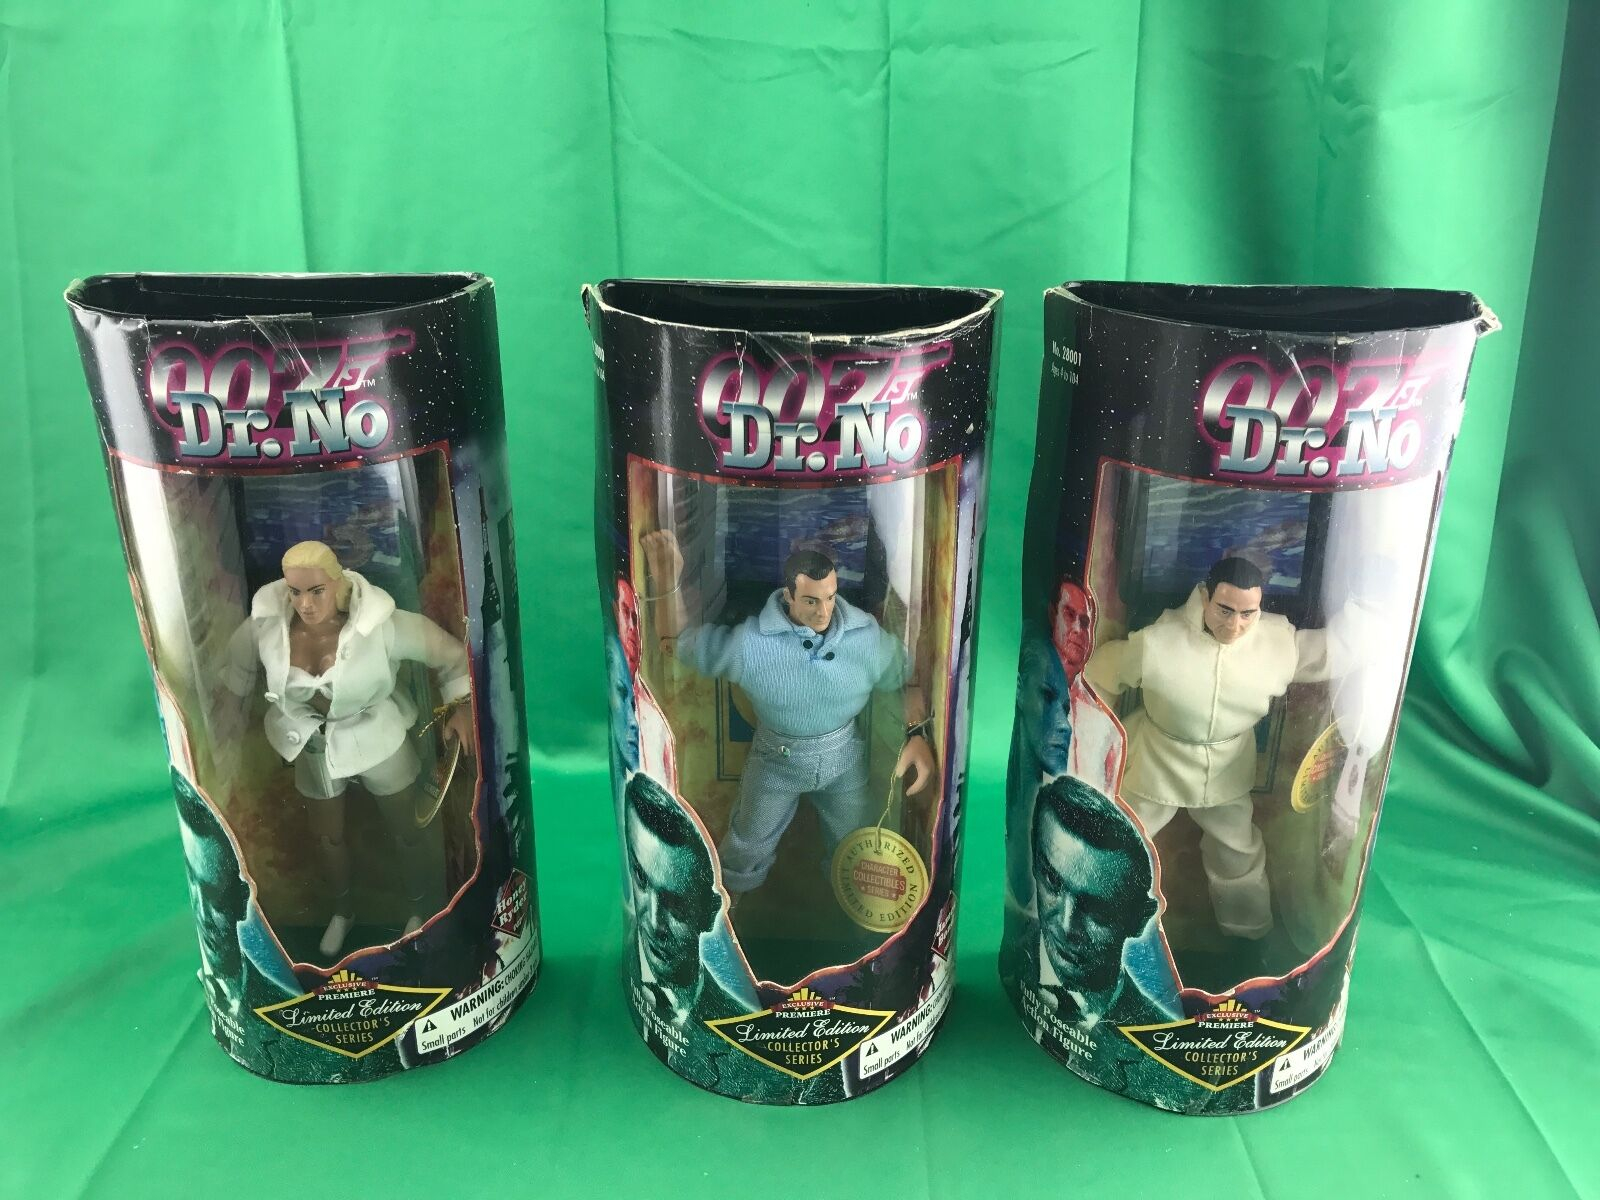 LOT OF OF OF 3 007 DR NO DOLLS LIMITED EDITION COLLECTORS SERIES (BOXES HAS SOME WEAR) 630677